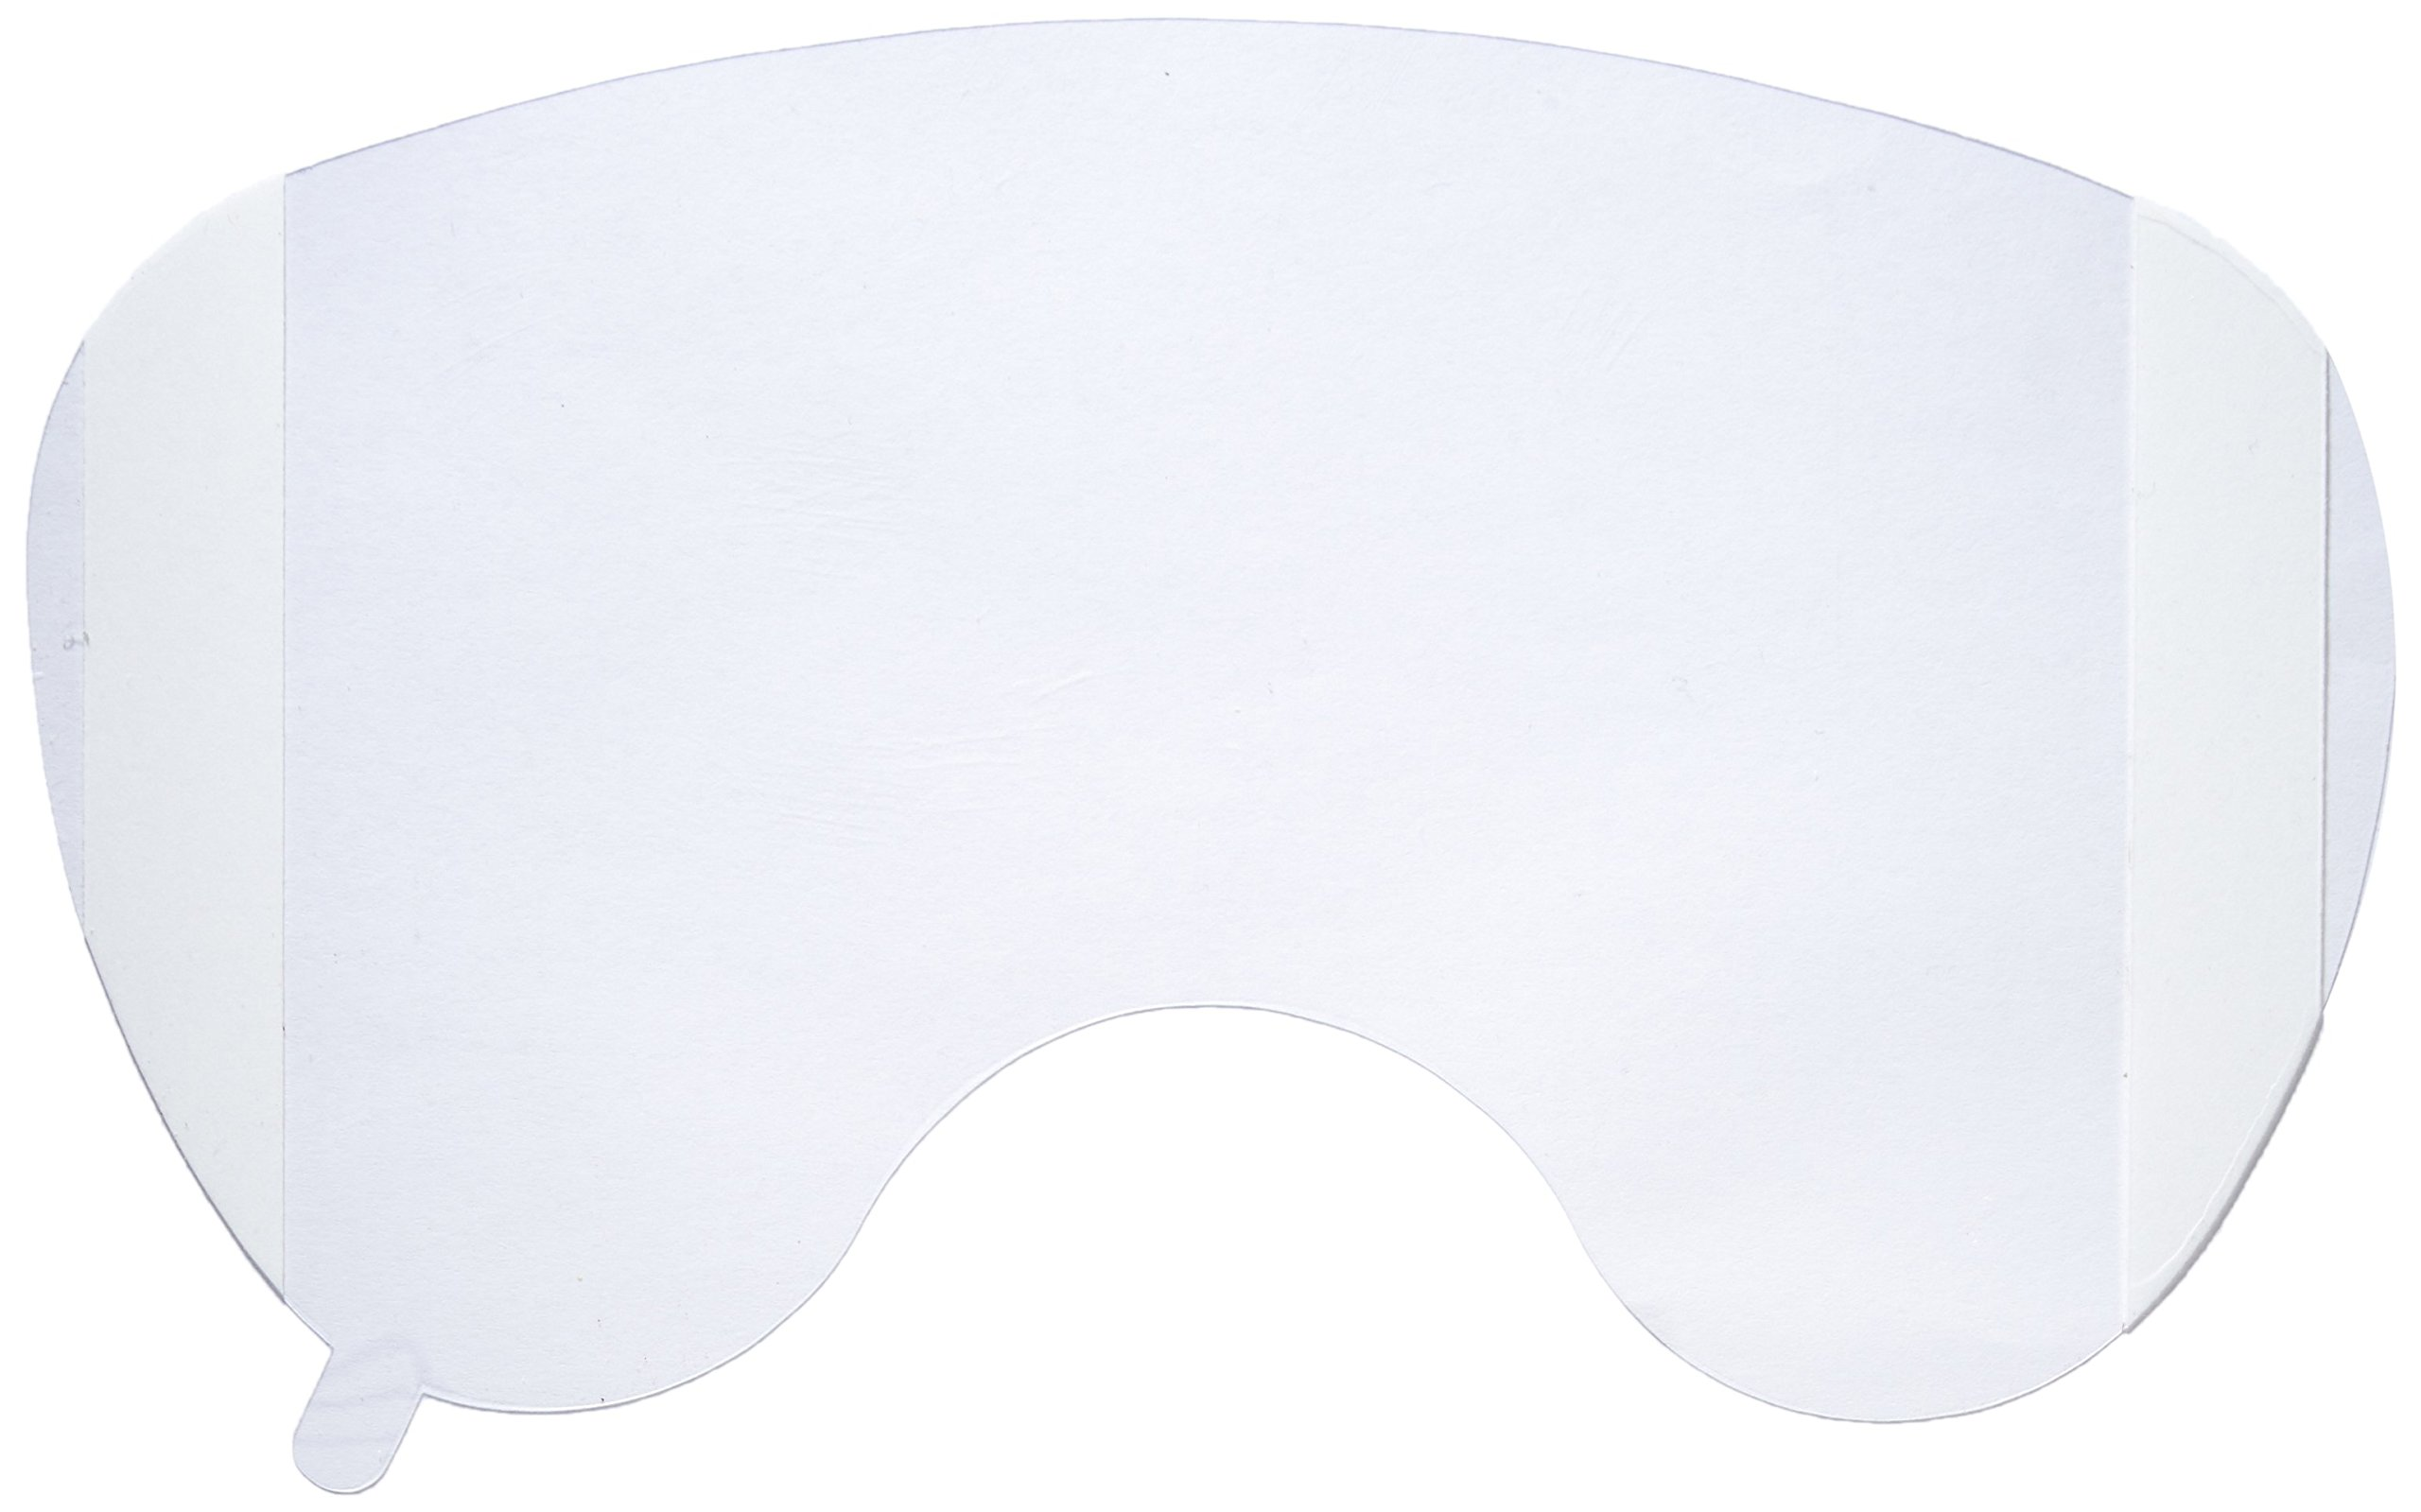 MSA 491500 Cover Lens for Ultra Elite Full Facepiece Respirator, Clear (Pack of 25)